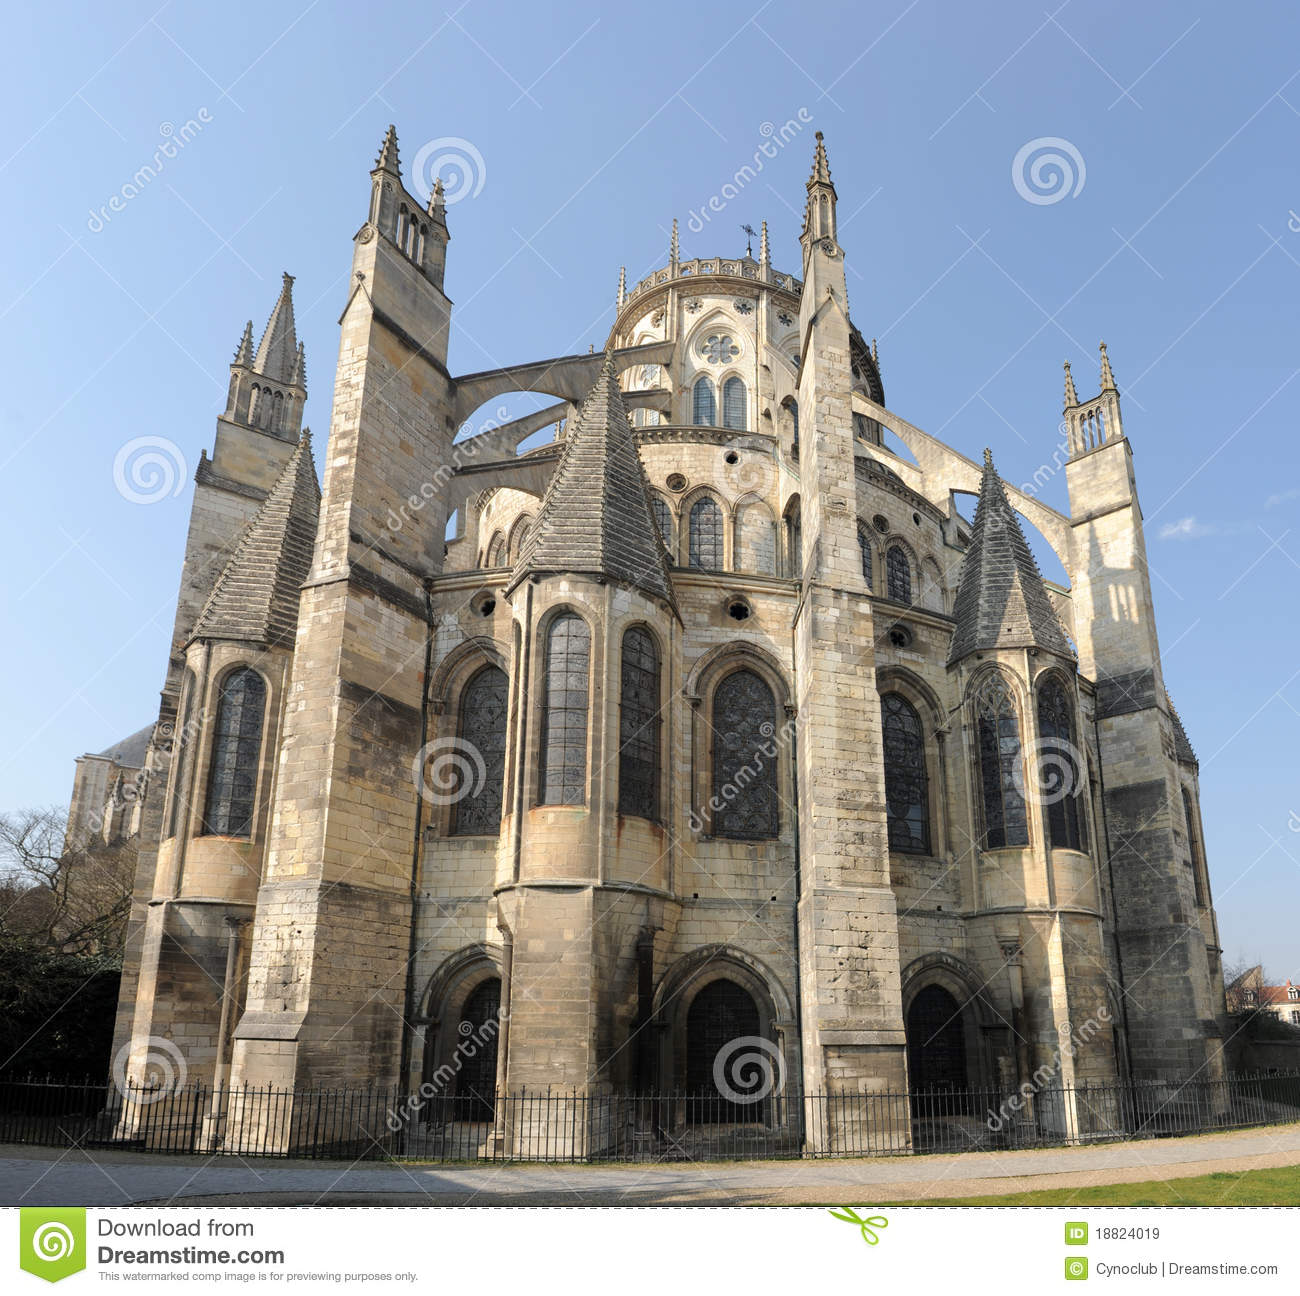 Cathedral of bourges royalty free stock images image 18824019 - Stock industriel bourges ...